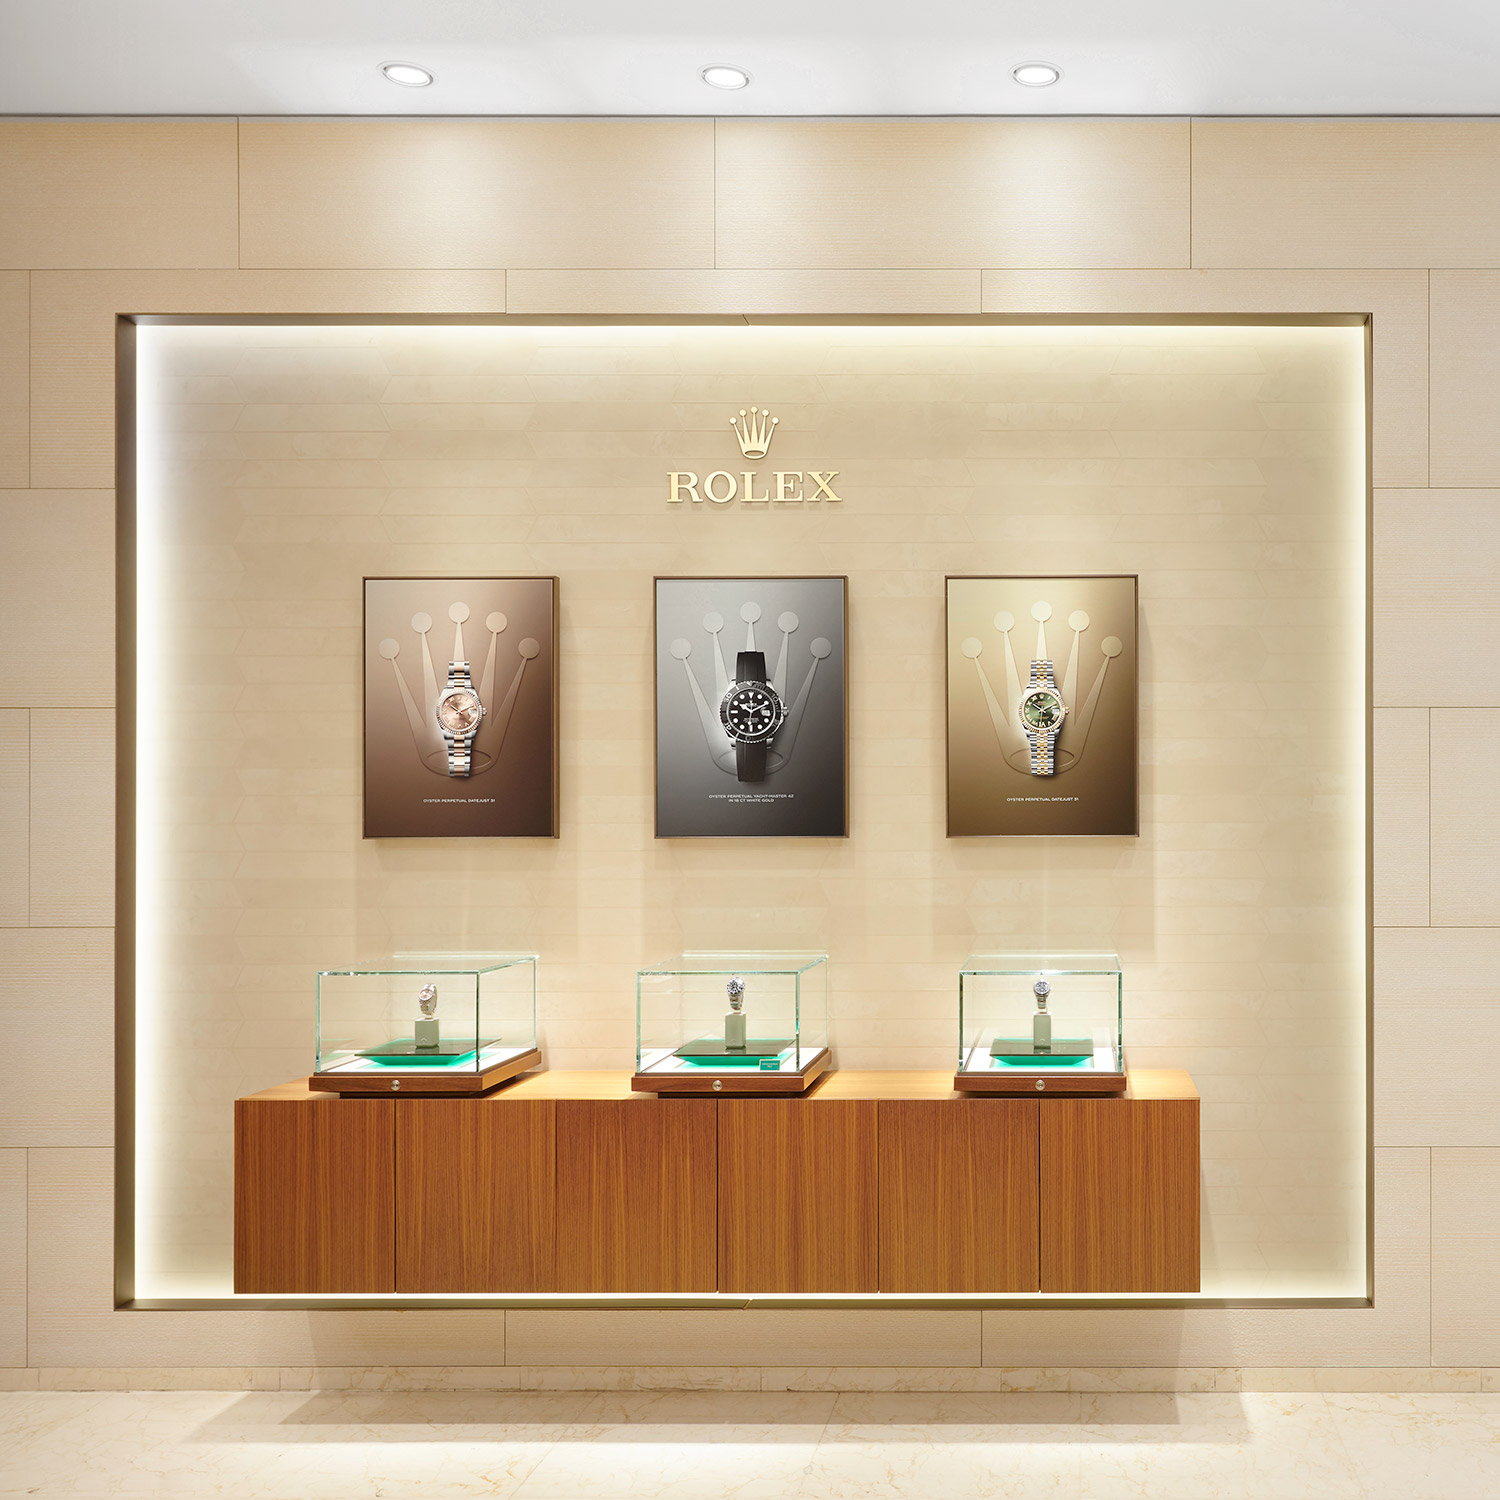 Siam Swiss Rolex Watches on Stucco Wall Display